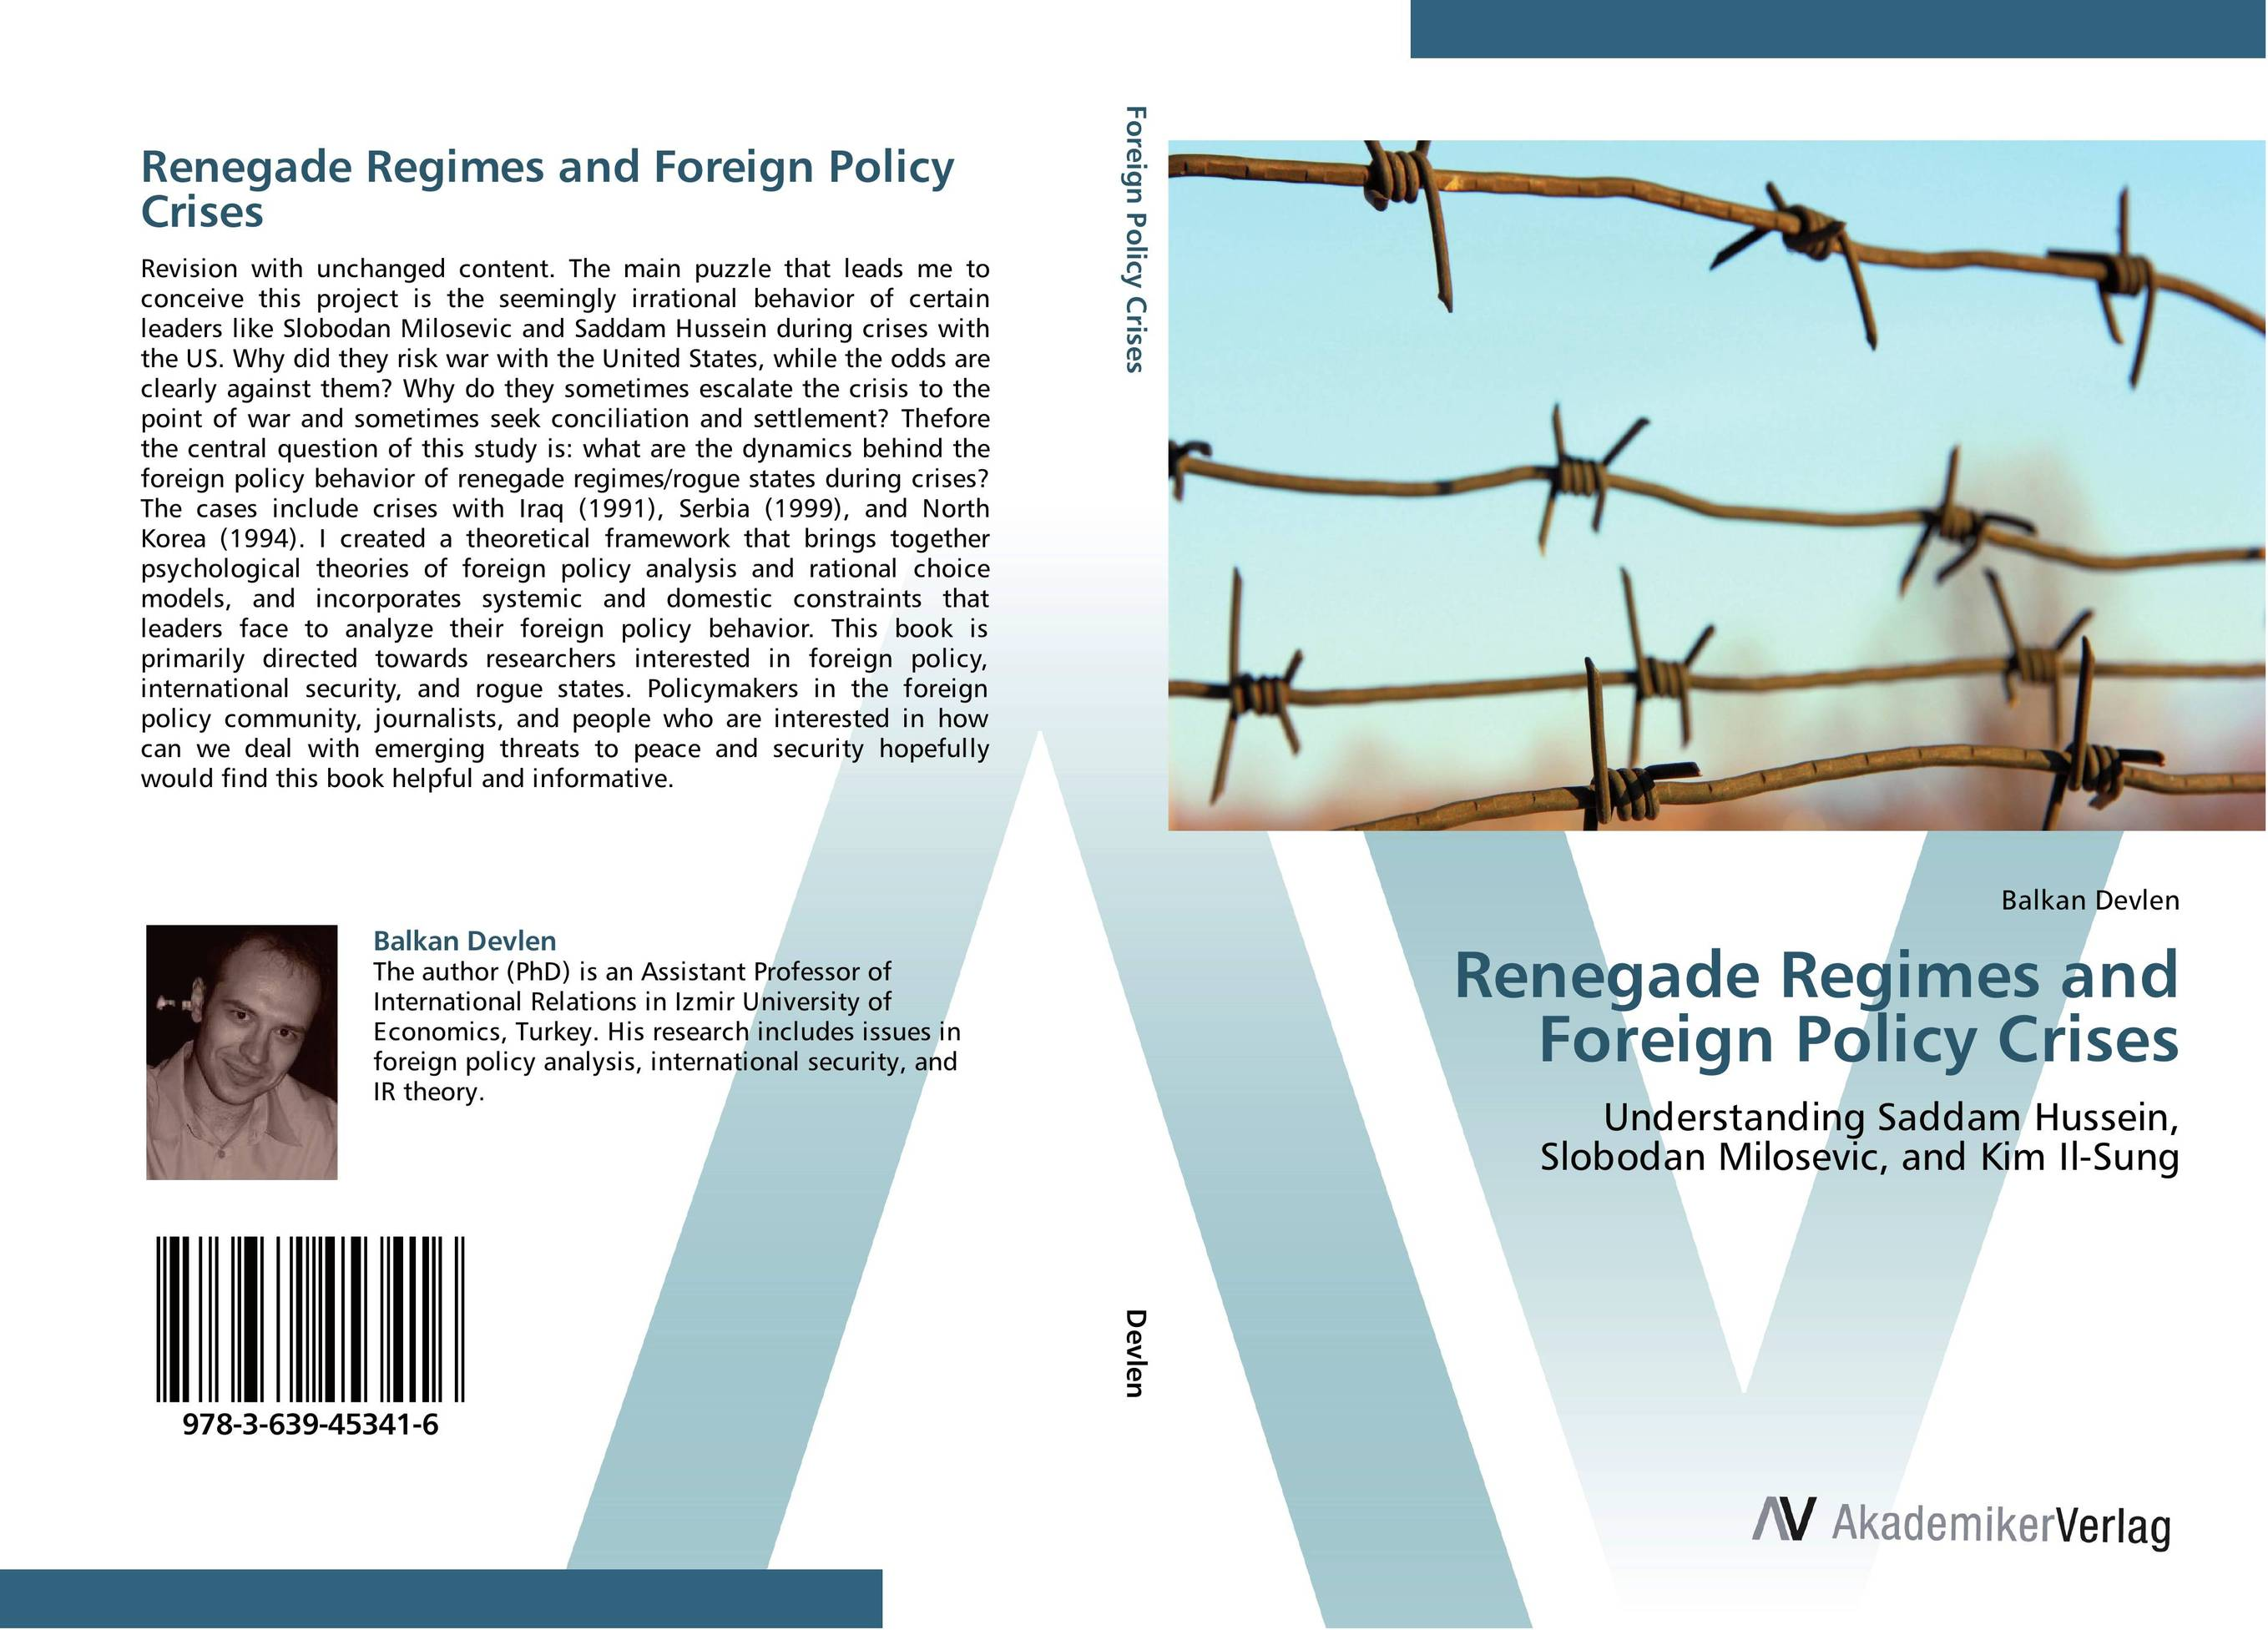 Renegade Regimes and Foreign Policy Crises